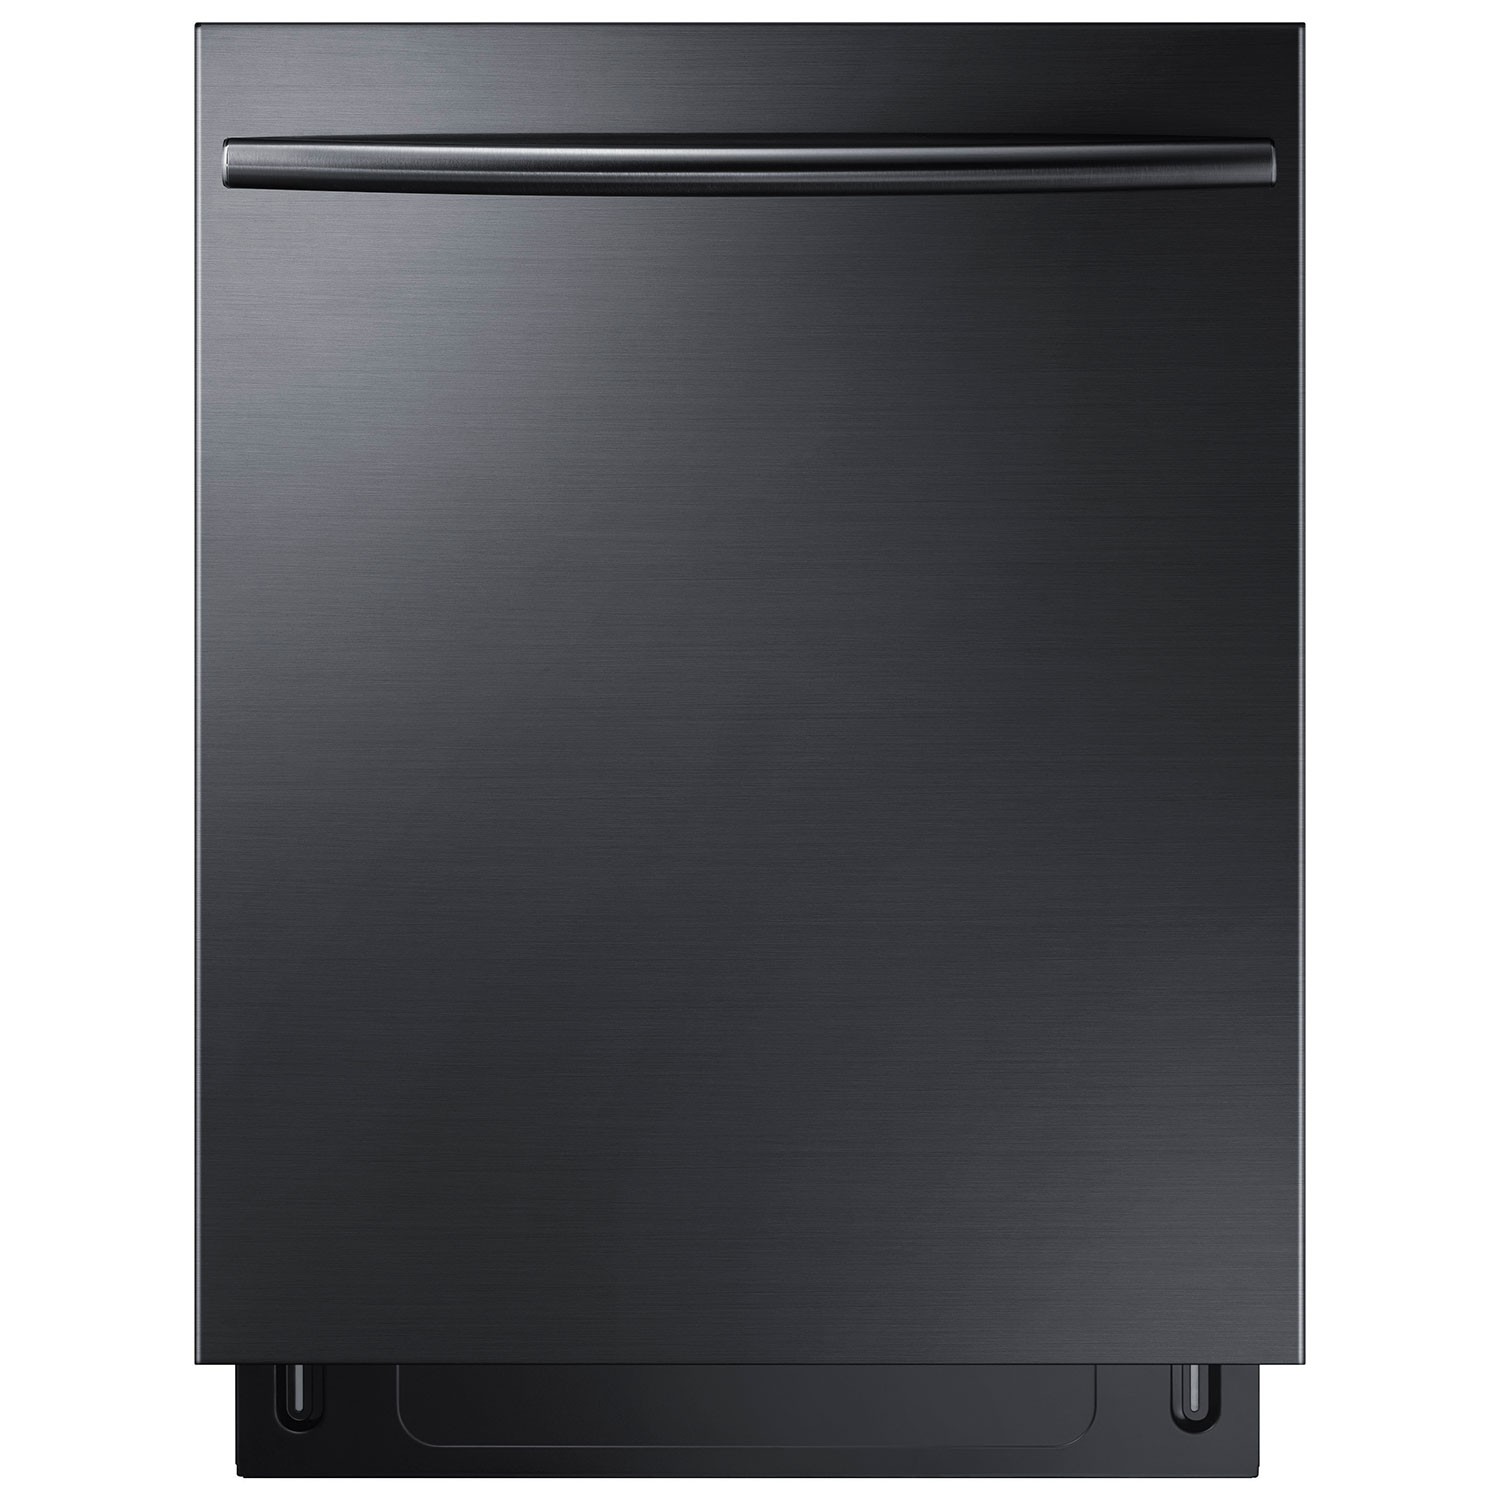 dishwasher clipart black and white. samsung 24\ dishwasher clipart black and white r